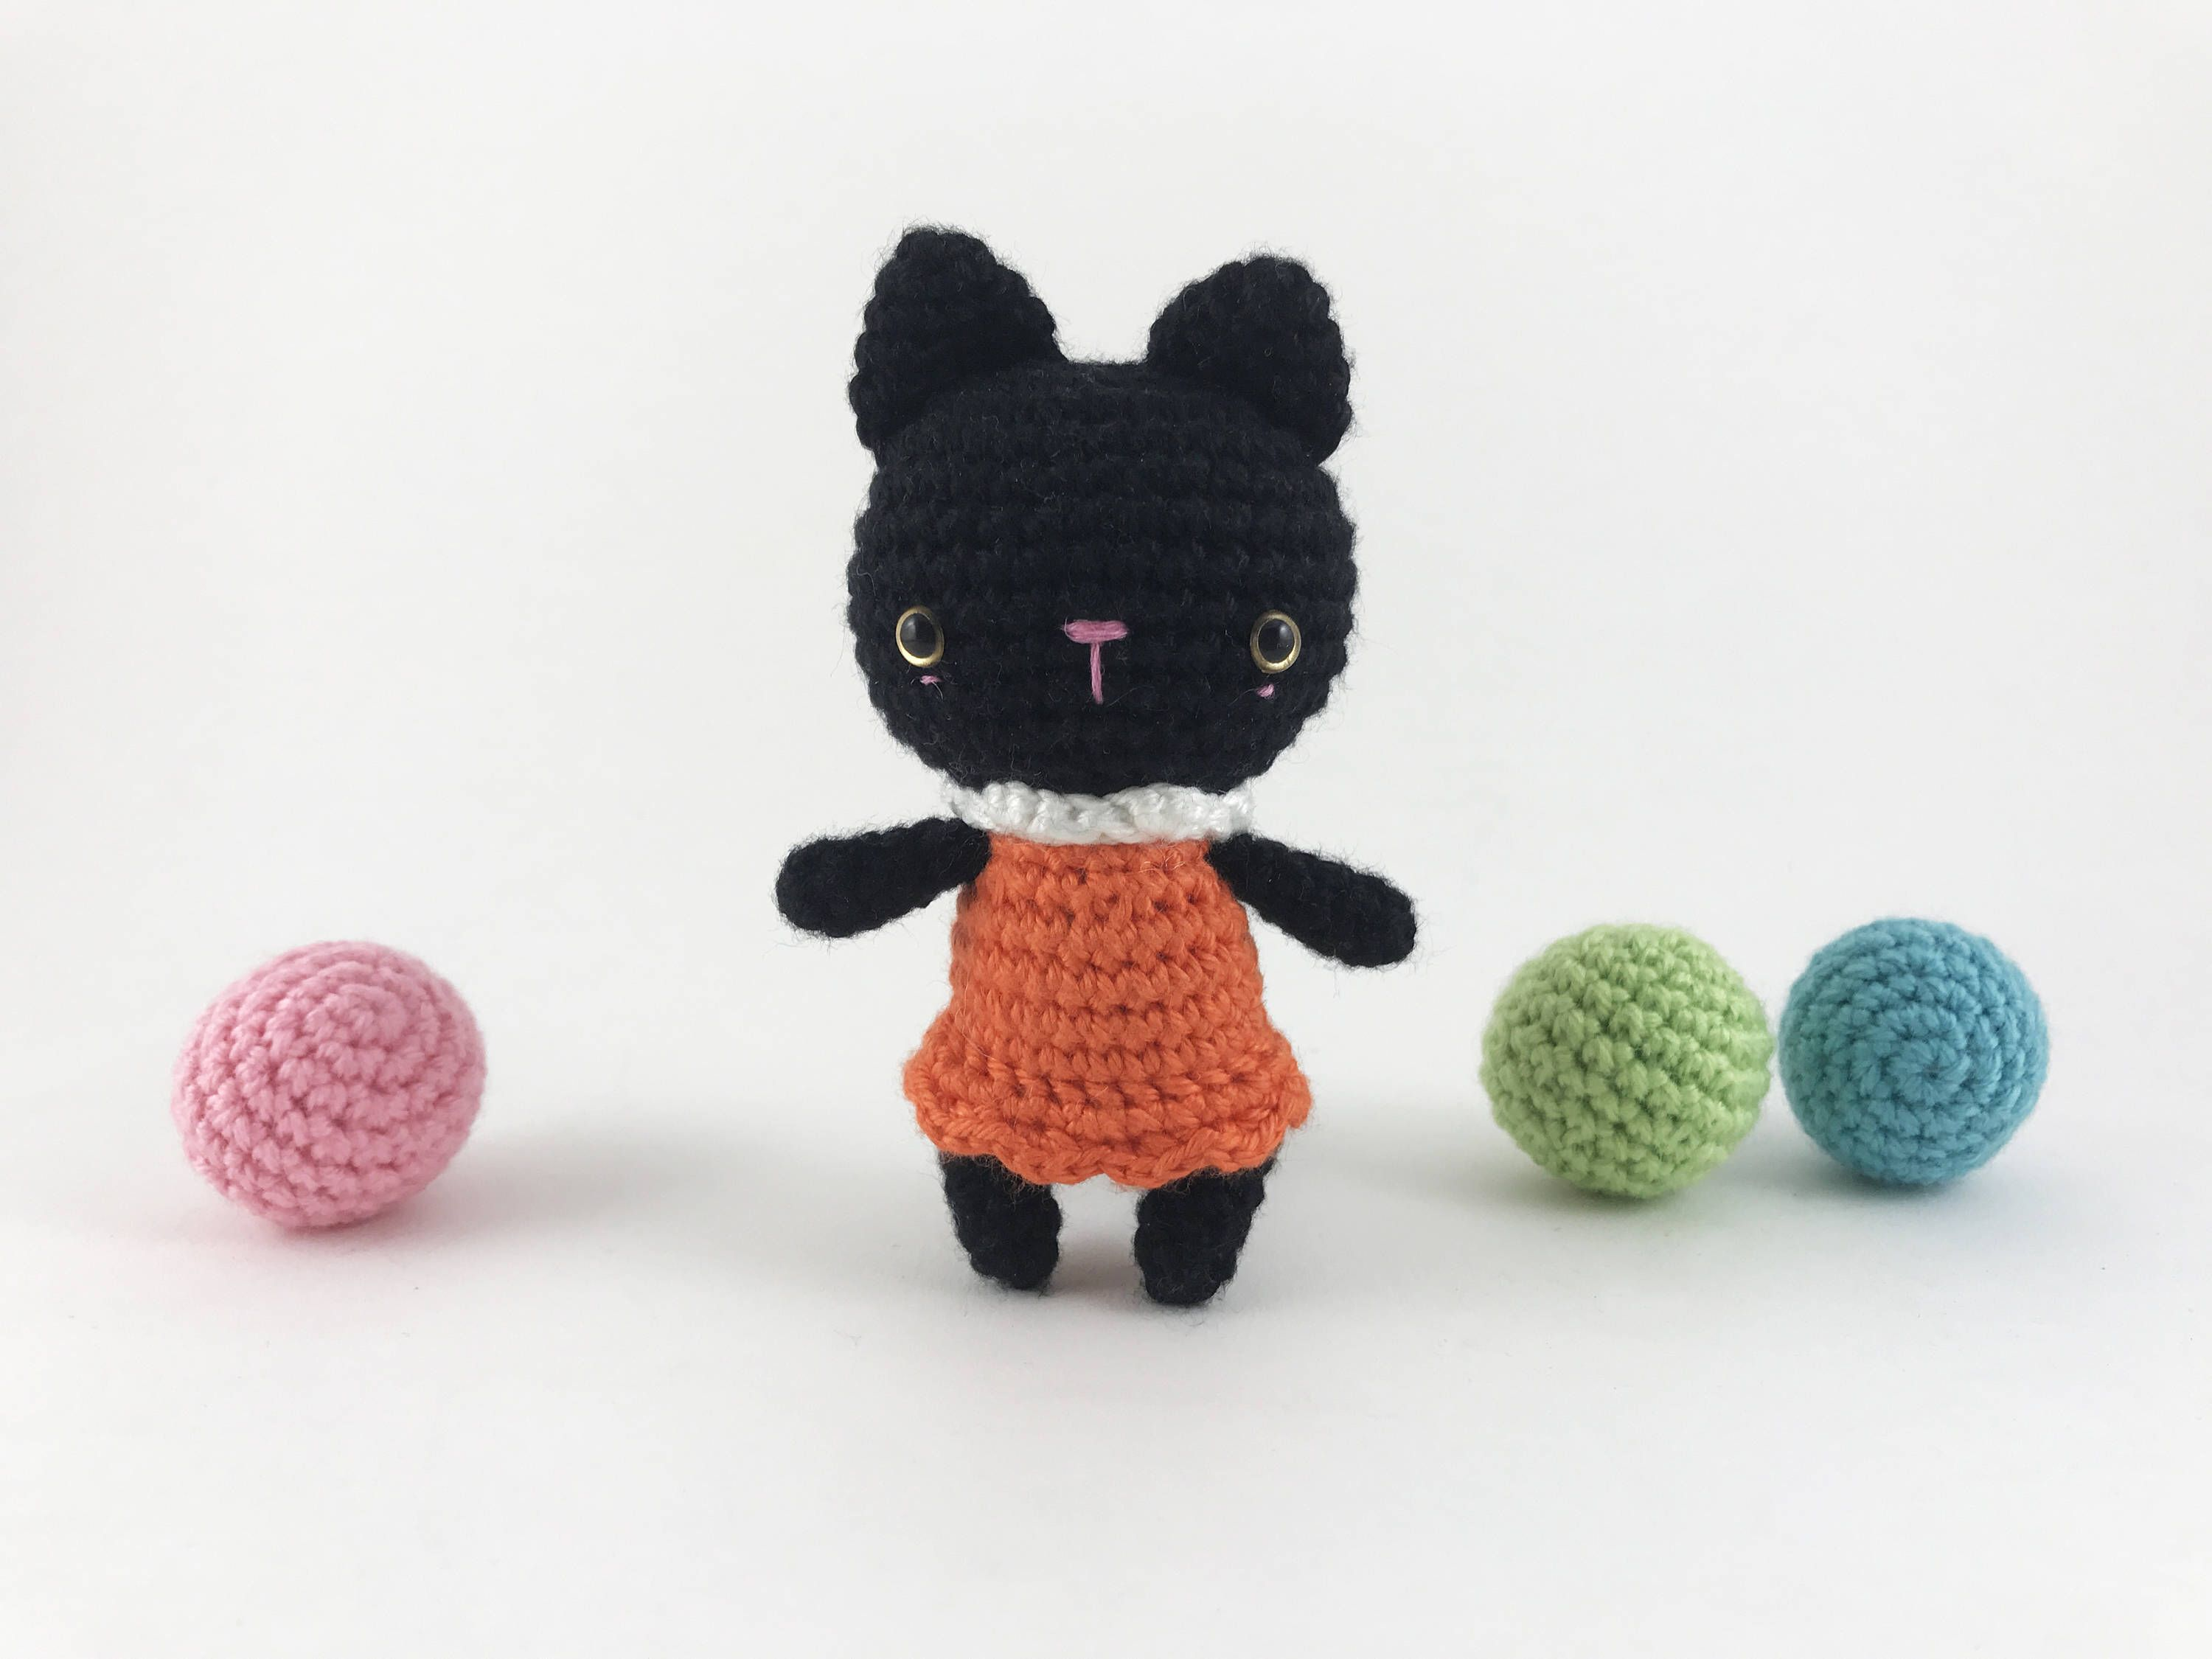 Crocheted Witch Kitty, Crochet Witch, Halloween, Amigurumi Cat ...